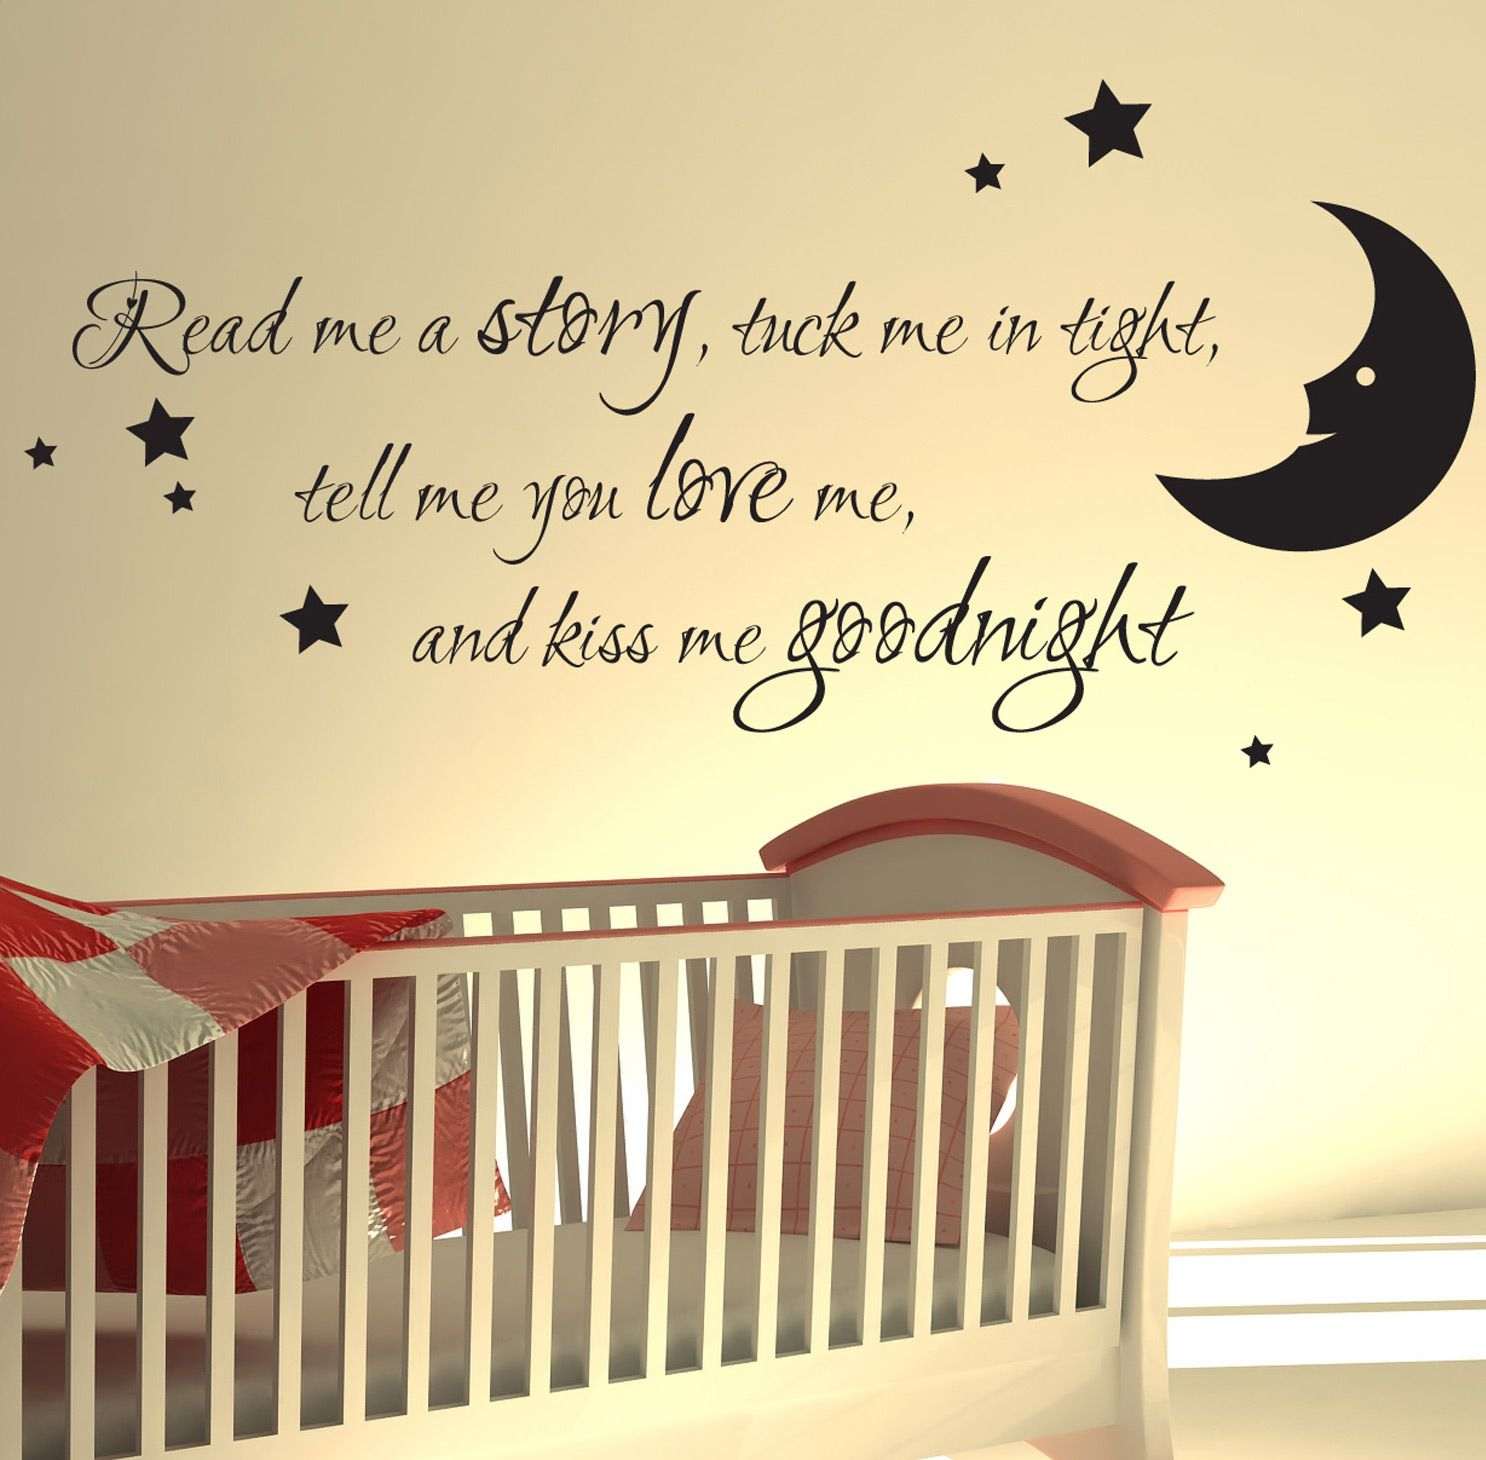 Nursery wall sticker read me a story kids art decals quotes w47 nursery wall sticker read me a story kids art decals quotes w47 amipublicfo Image collections